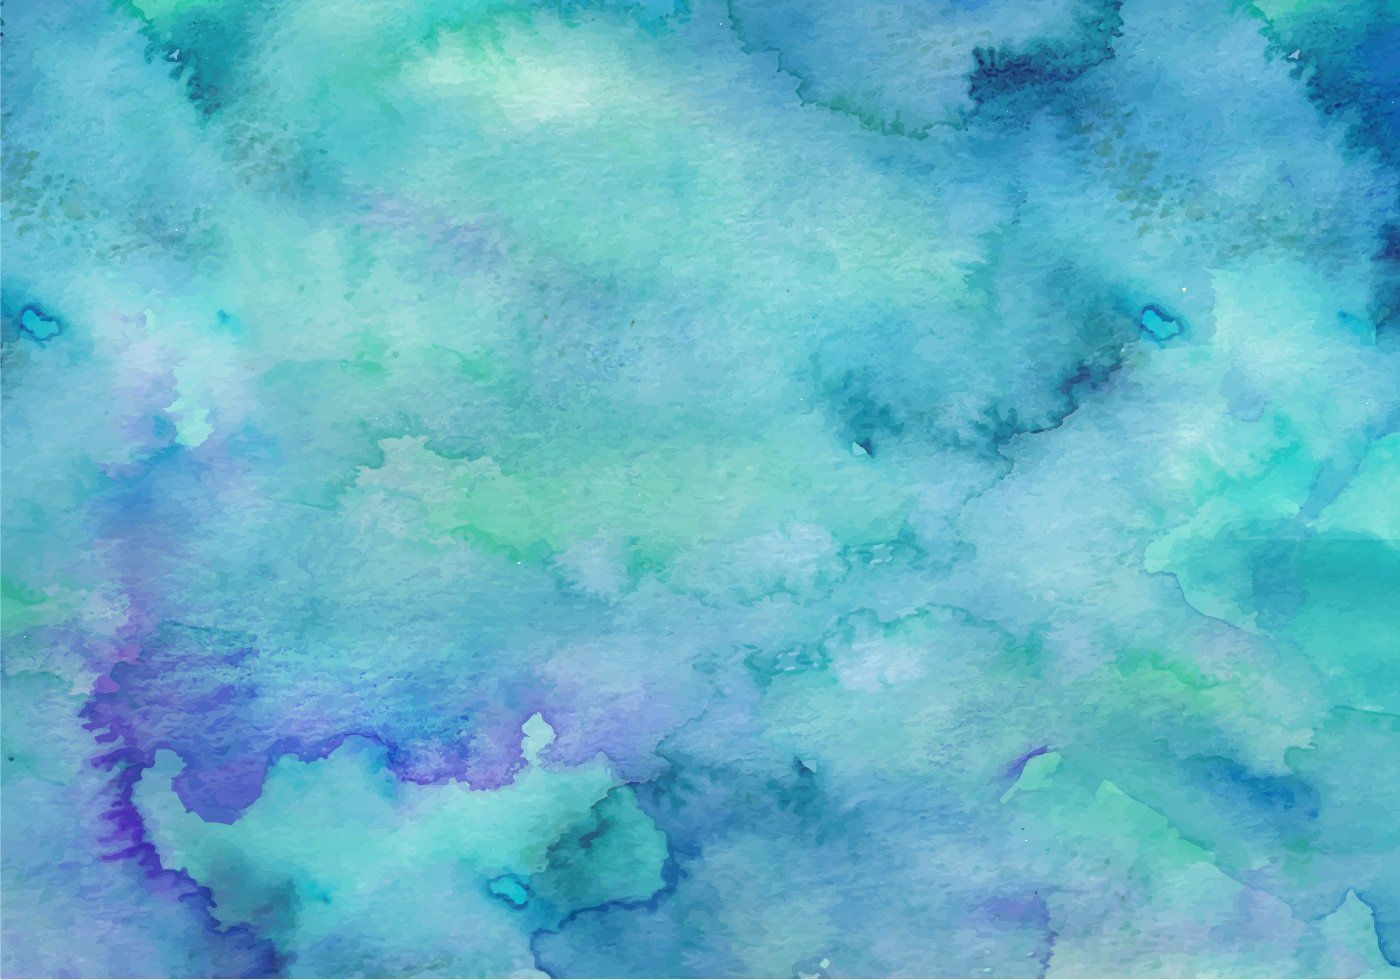 Teal Vector Watercolor Background Watercolor background 1400x980